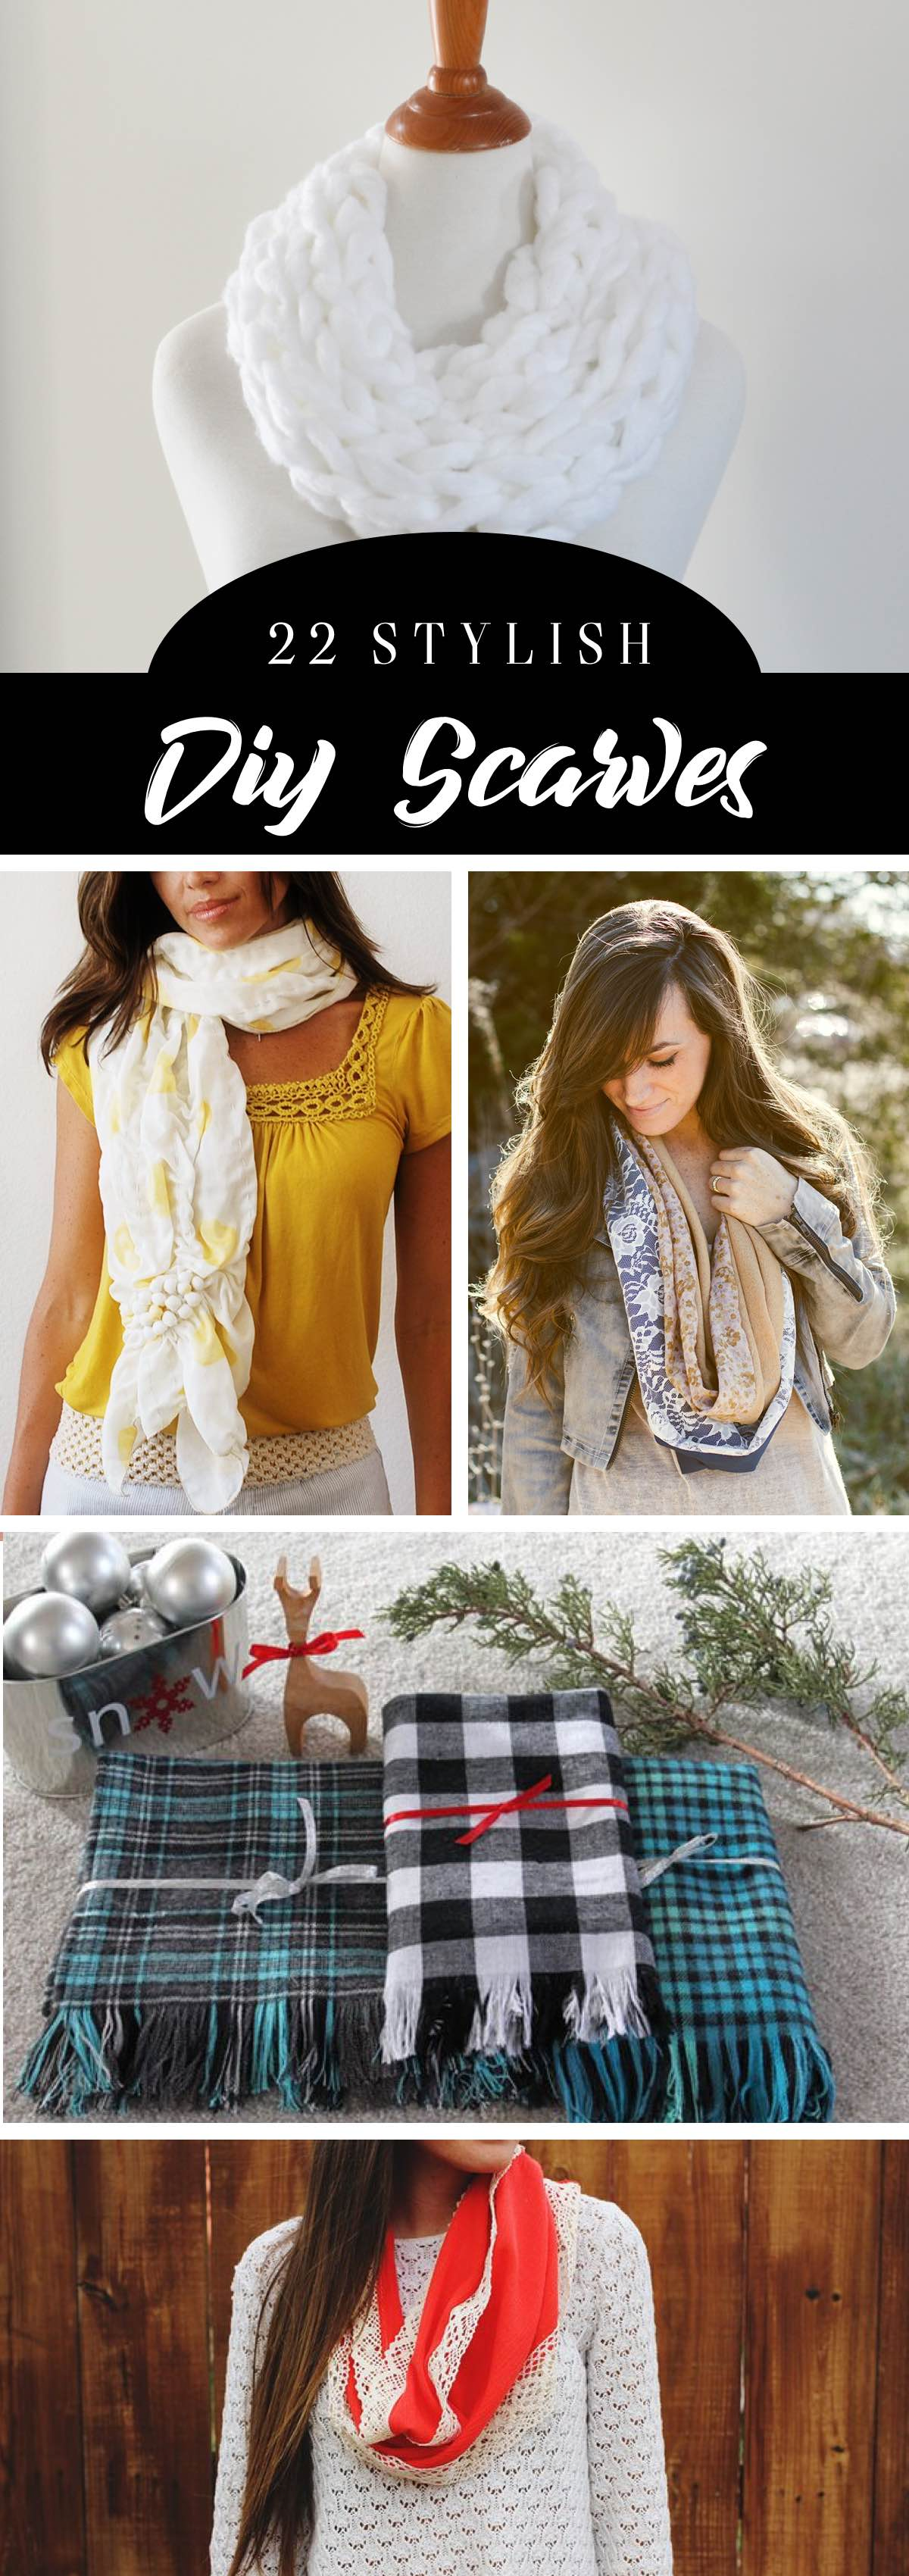 22 Stylish DIY Scarves To Stay Cozier and Make a Statement At the Same Time!